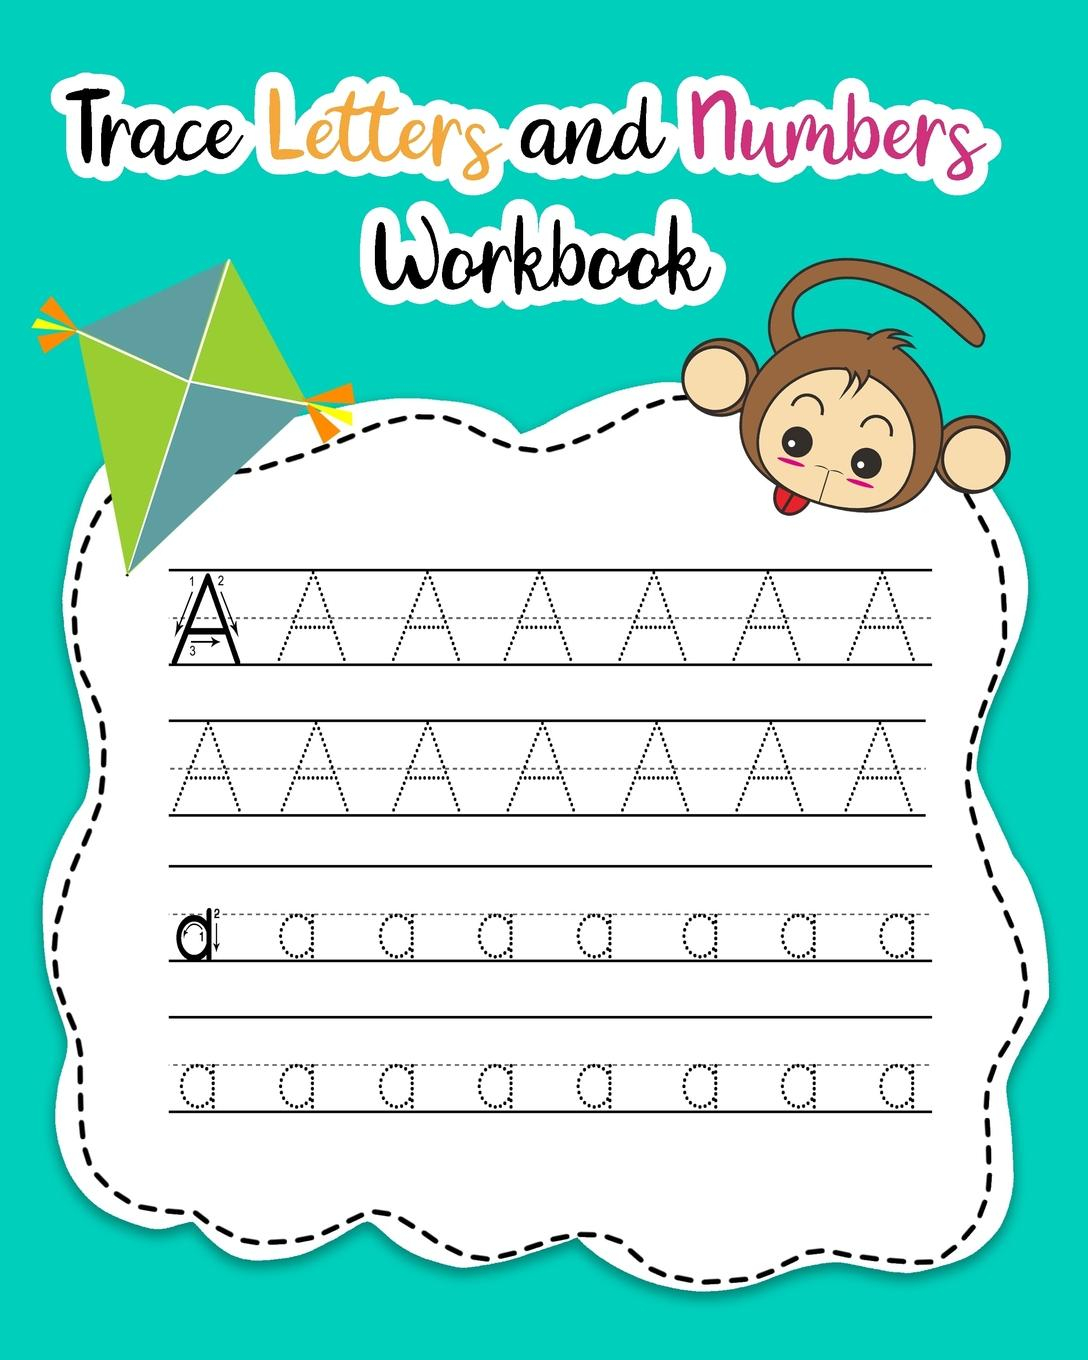 Trace Letters And Numbers Workbook: Trace Letters And Numbers Workbook:  Learn How To Write Alphabet Upper And Lower Case And Numbers (Paperback) -